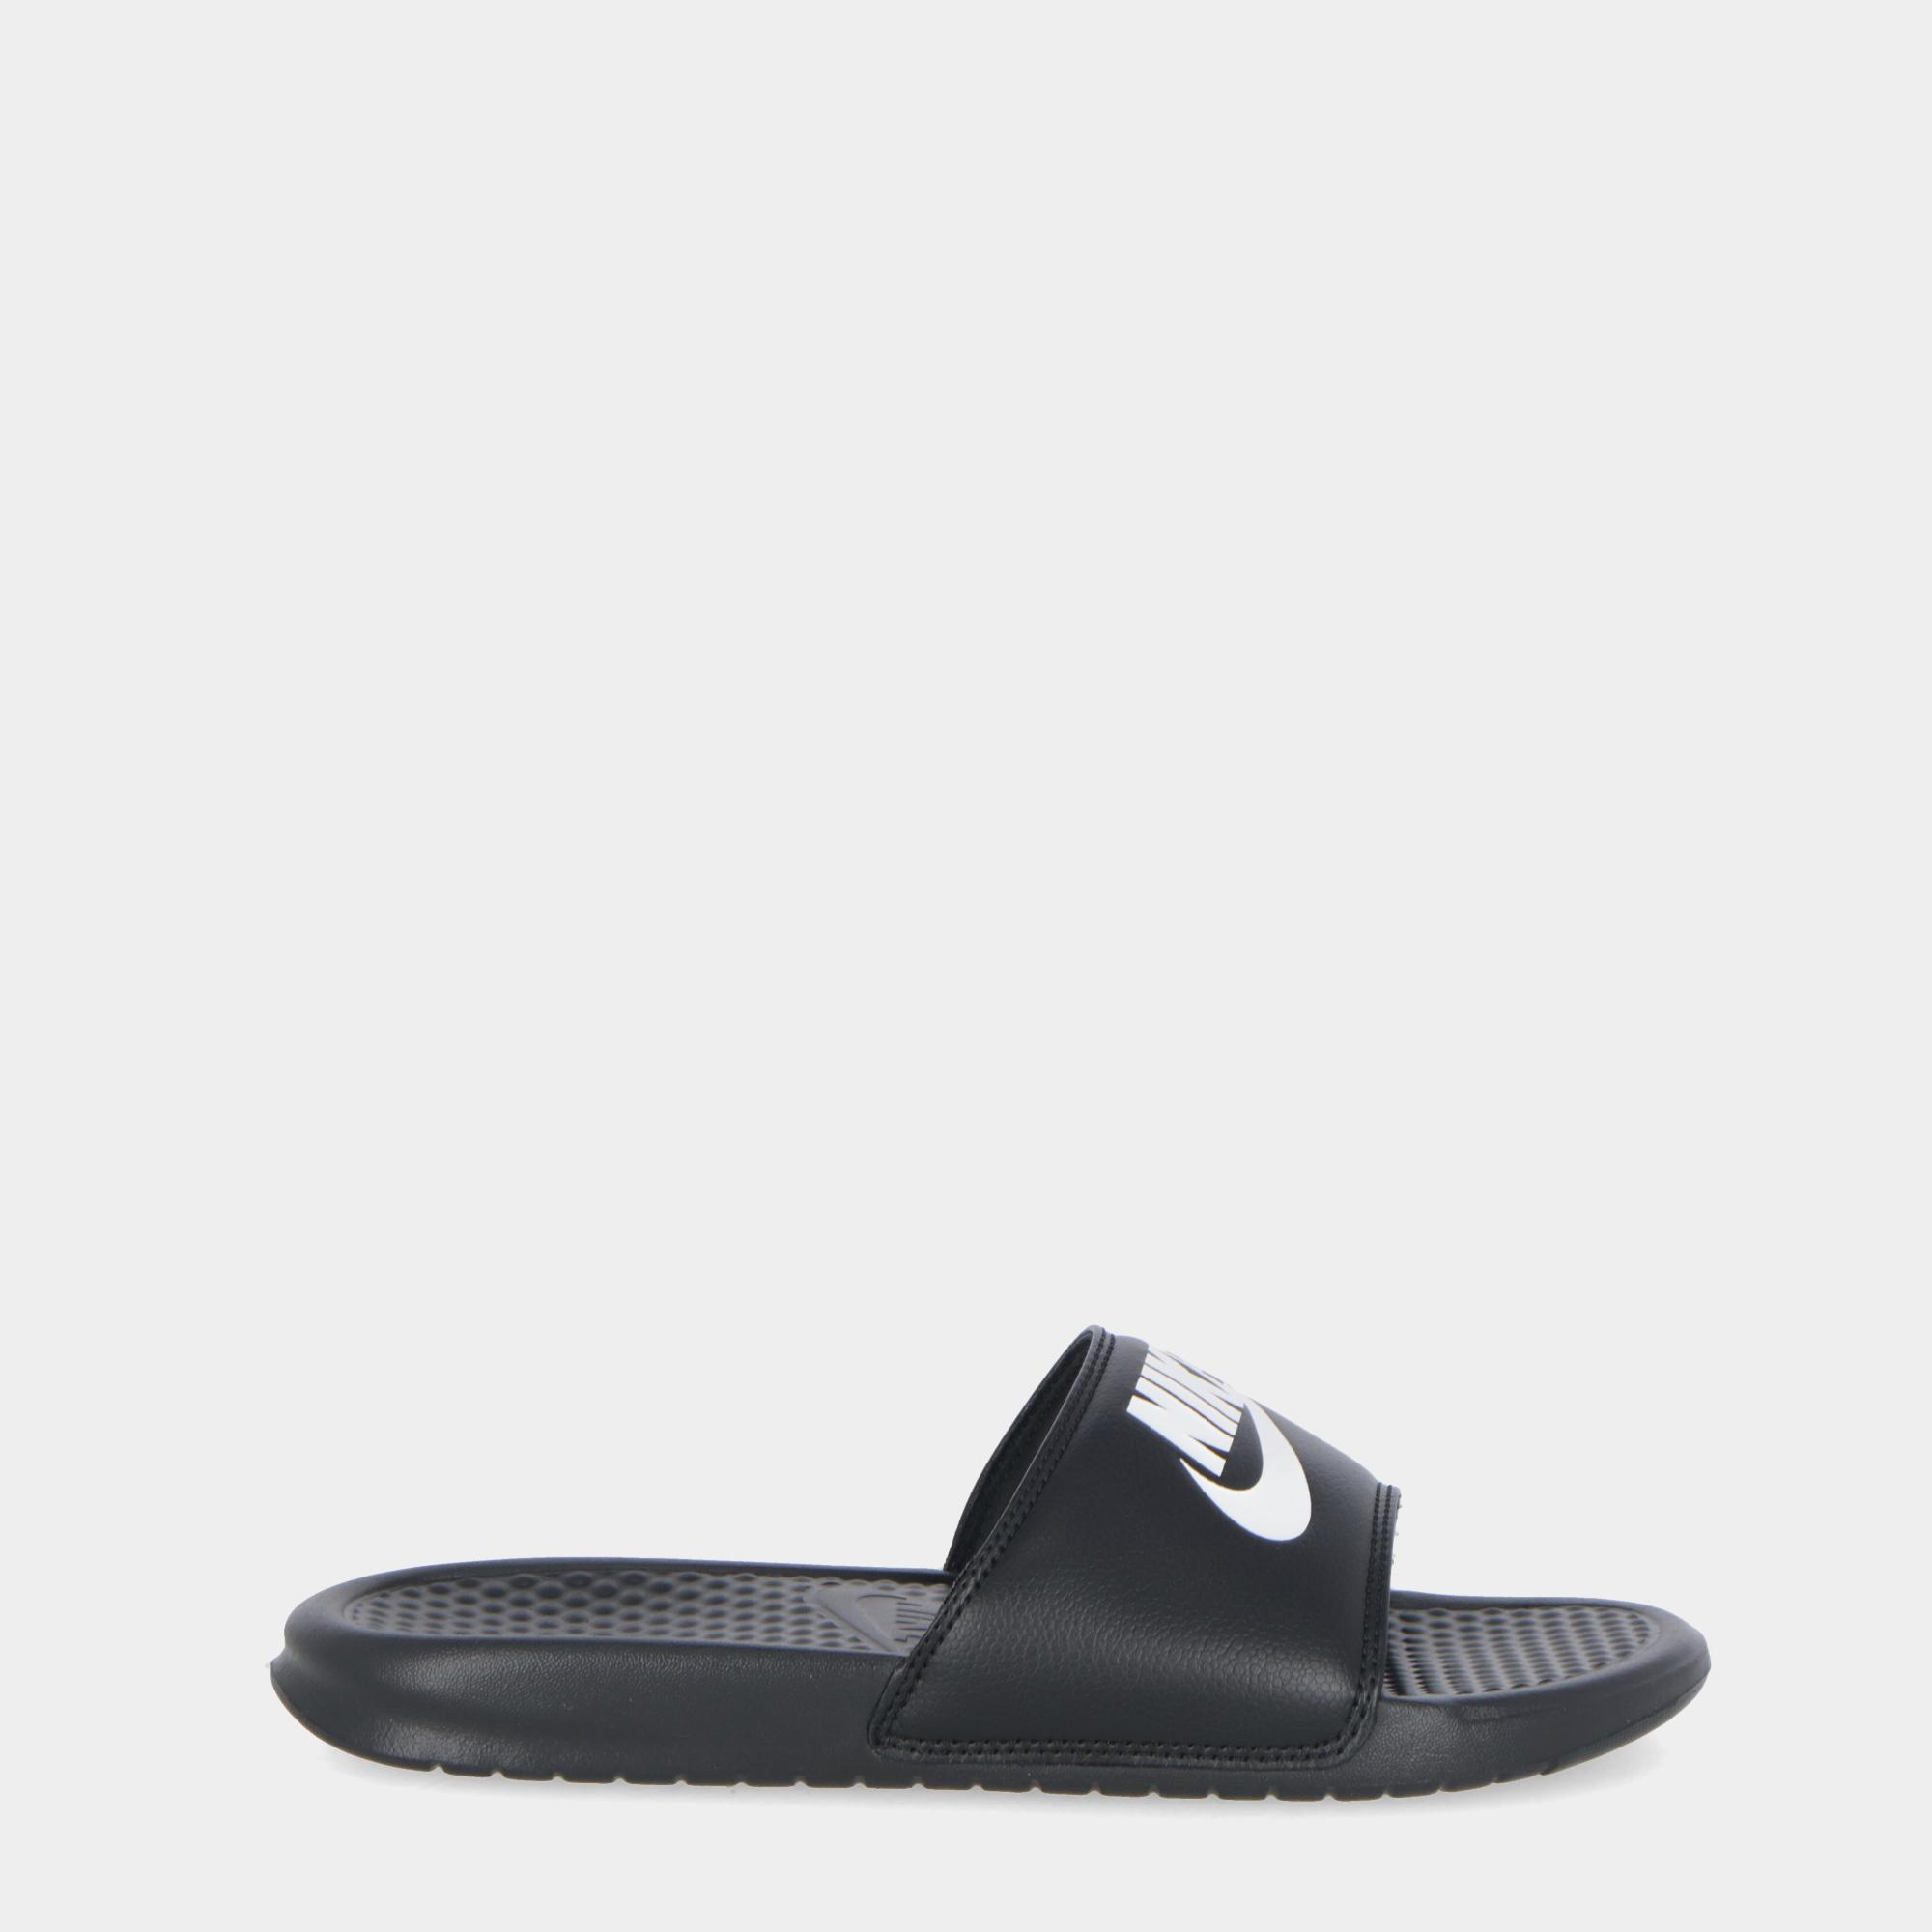 lowest price 424d6 af172 Nike Benassi Jdi BLACK WHITE